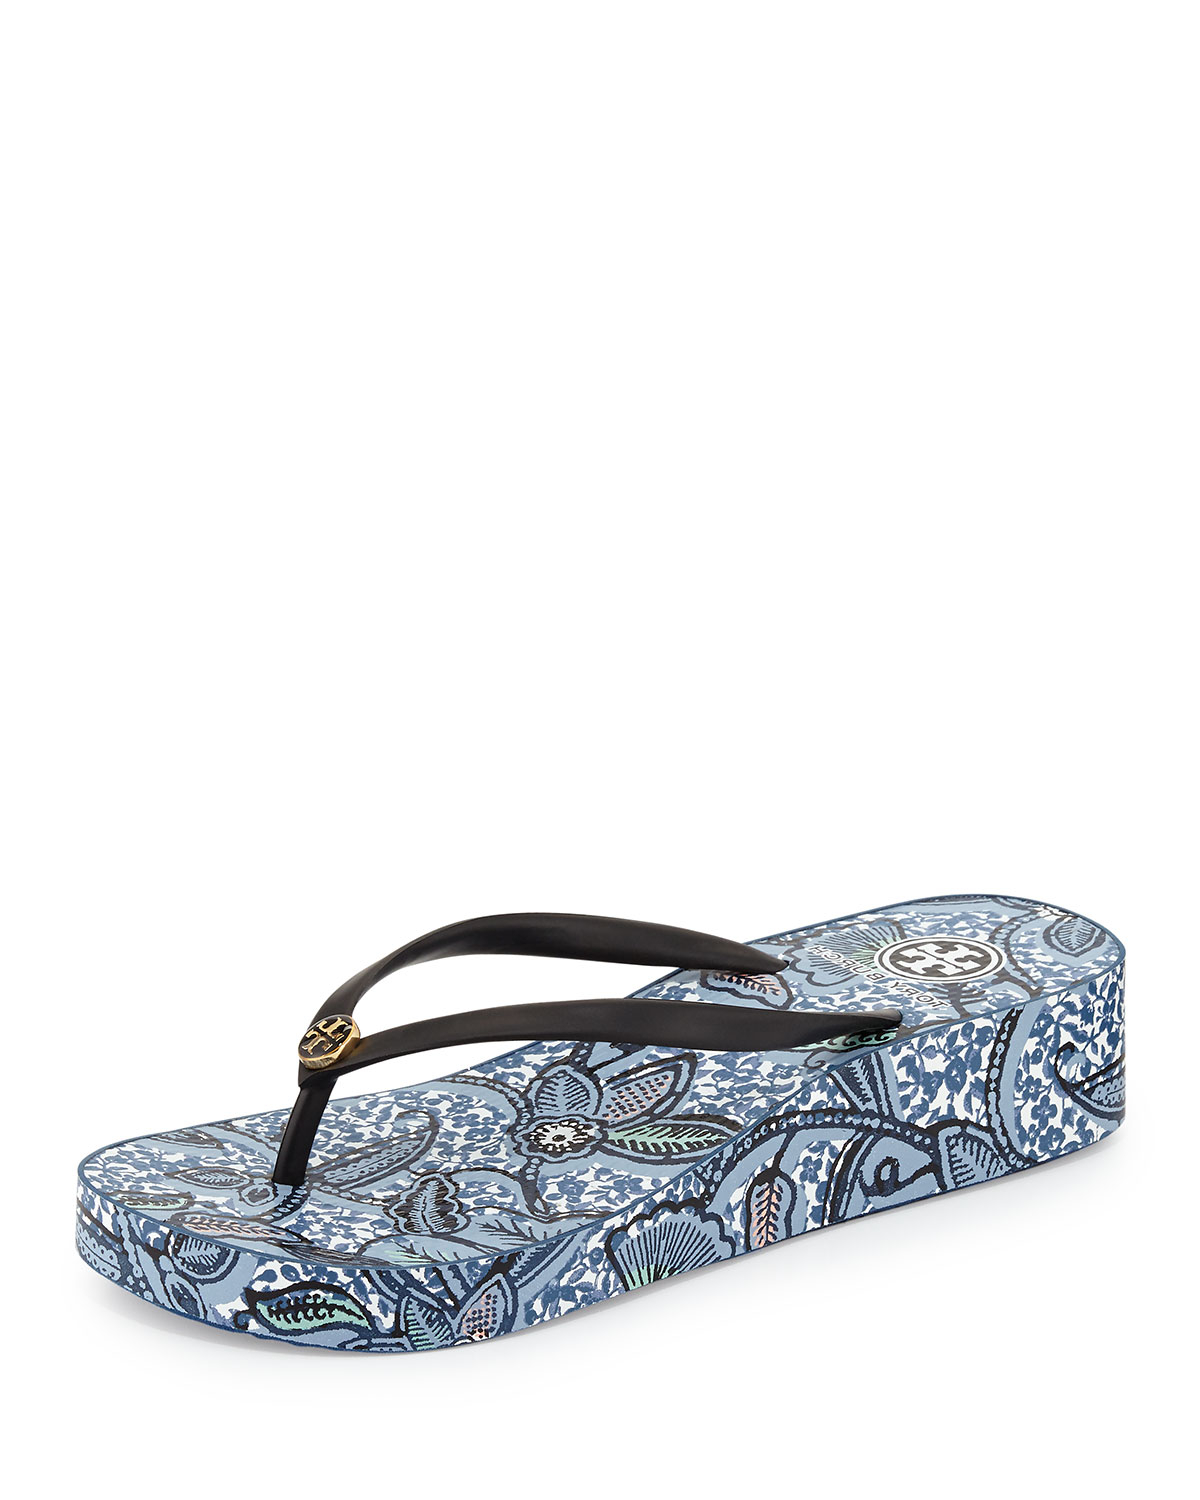 Gallery - Tory Burch Thandie Printed Wedge Flip-Flop Sandal In Black Lyst